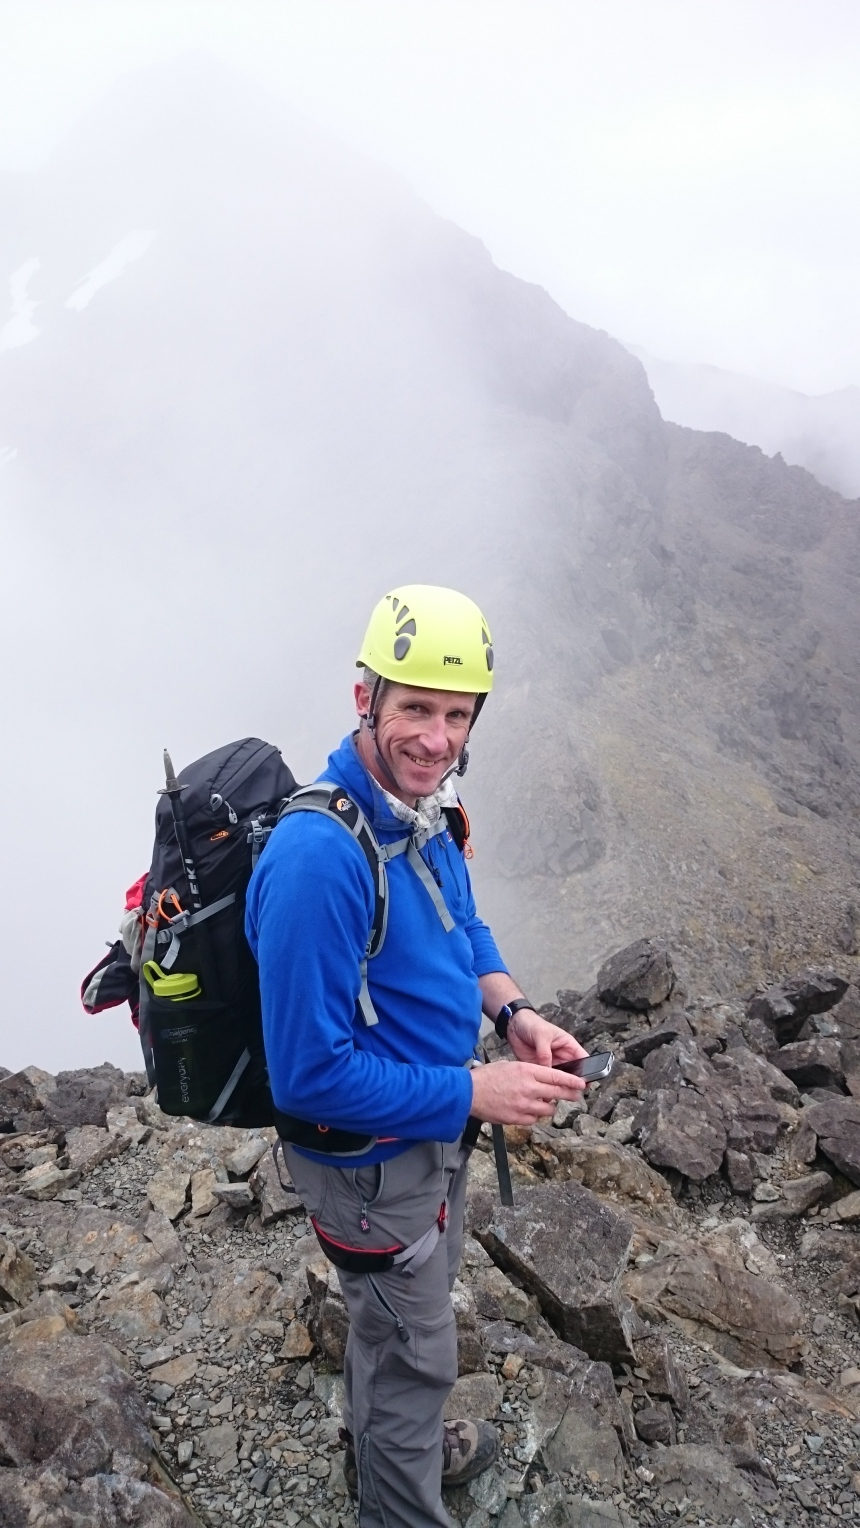 Ian enjoying his first outing on the Cuillin Ridge